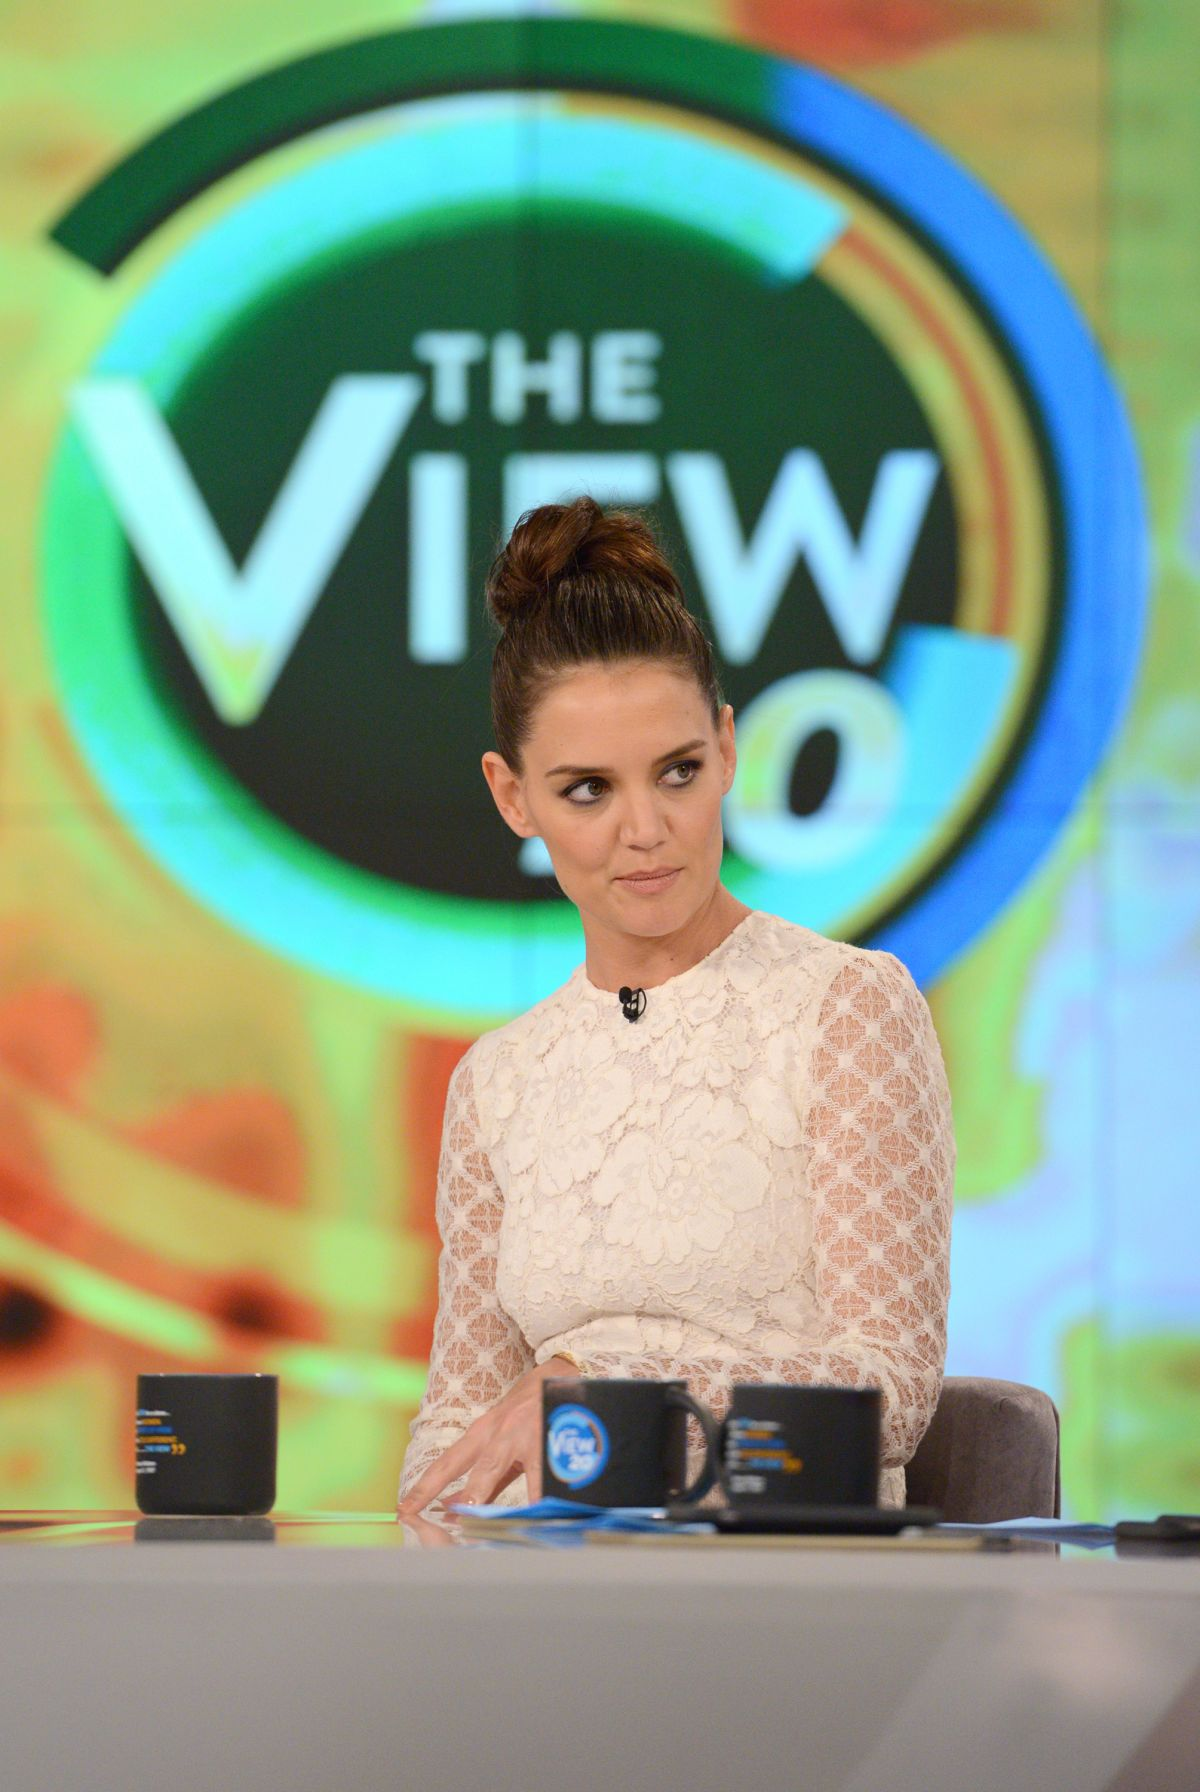 KATIE HOLMES at The View 03/29/2017